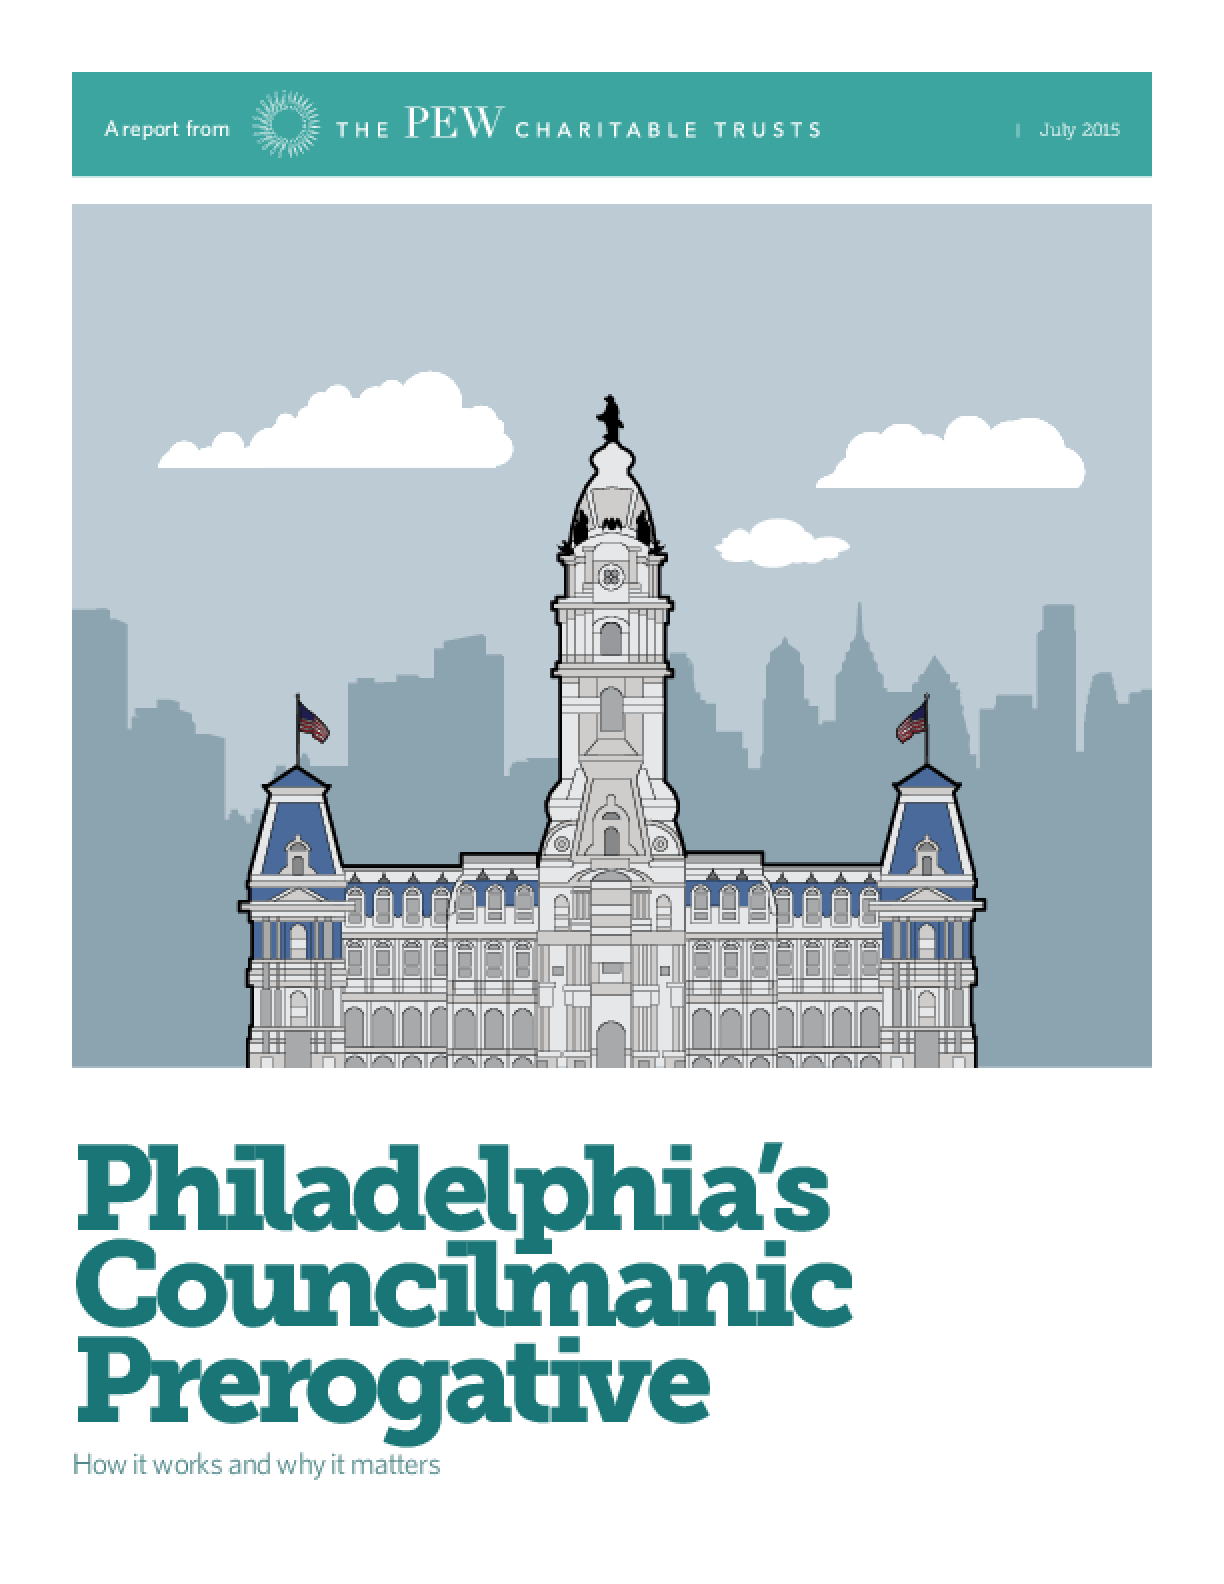 Philadelphia's Councilmanic Prerogative: How It Works and Why It Matters